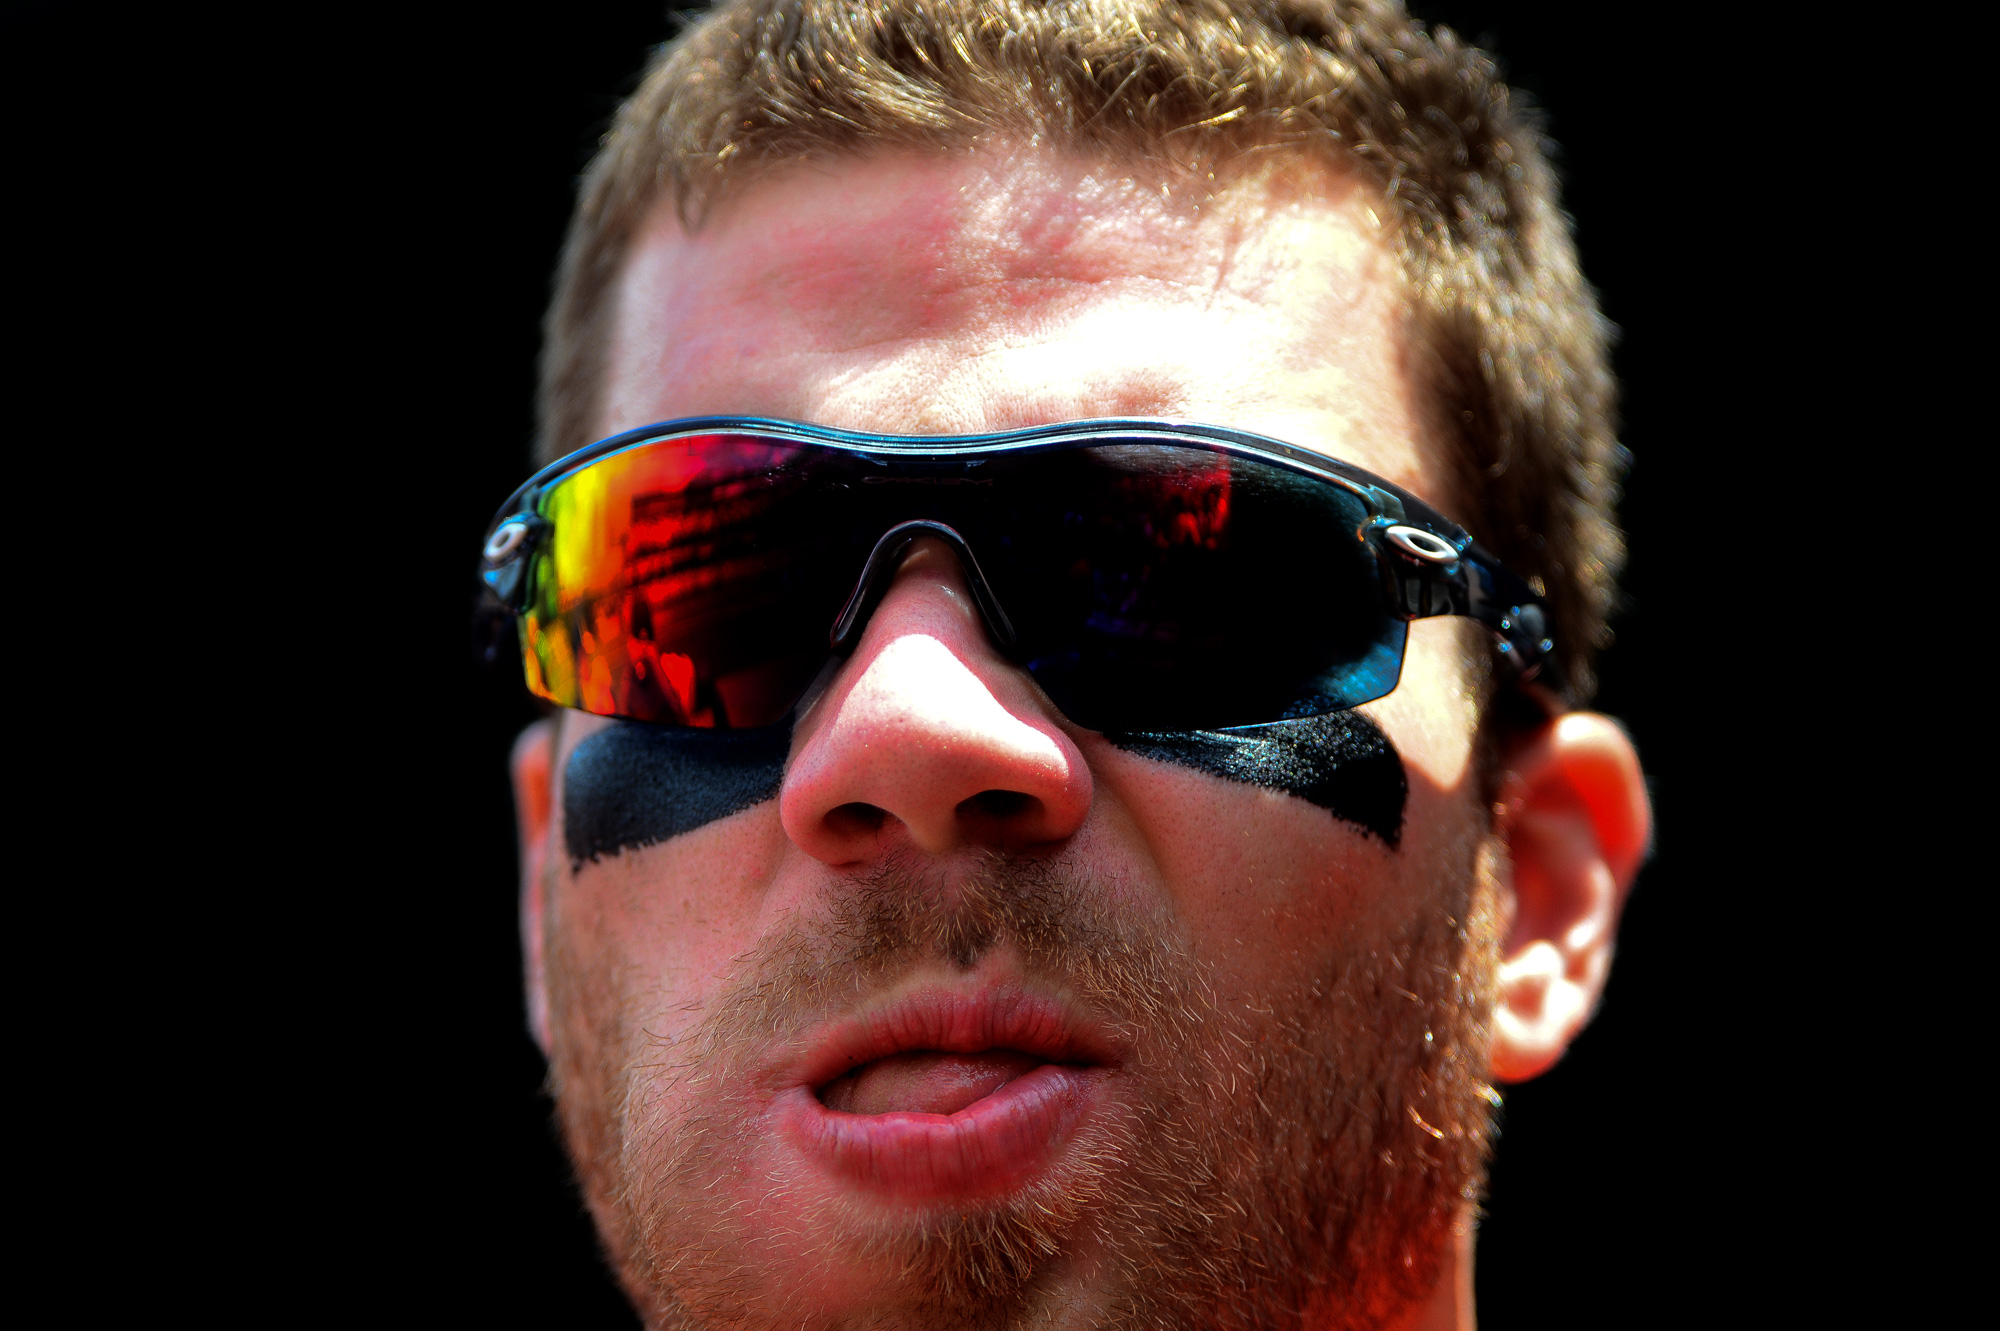 Chris Davis of the Baltimore Orioles prepares for an at bat on May 24, 2014 at Oriole Park at Camden Yards in Baltimore, Maryland.